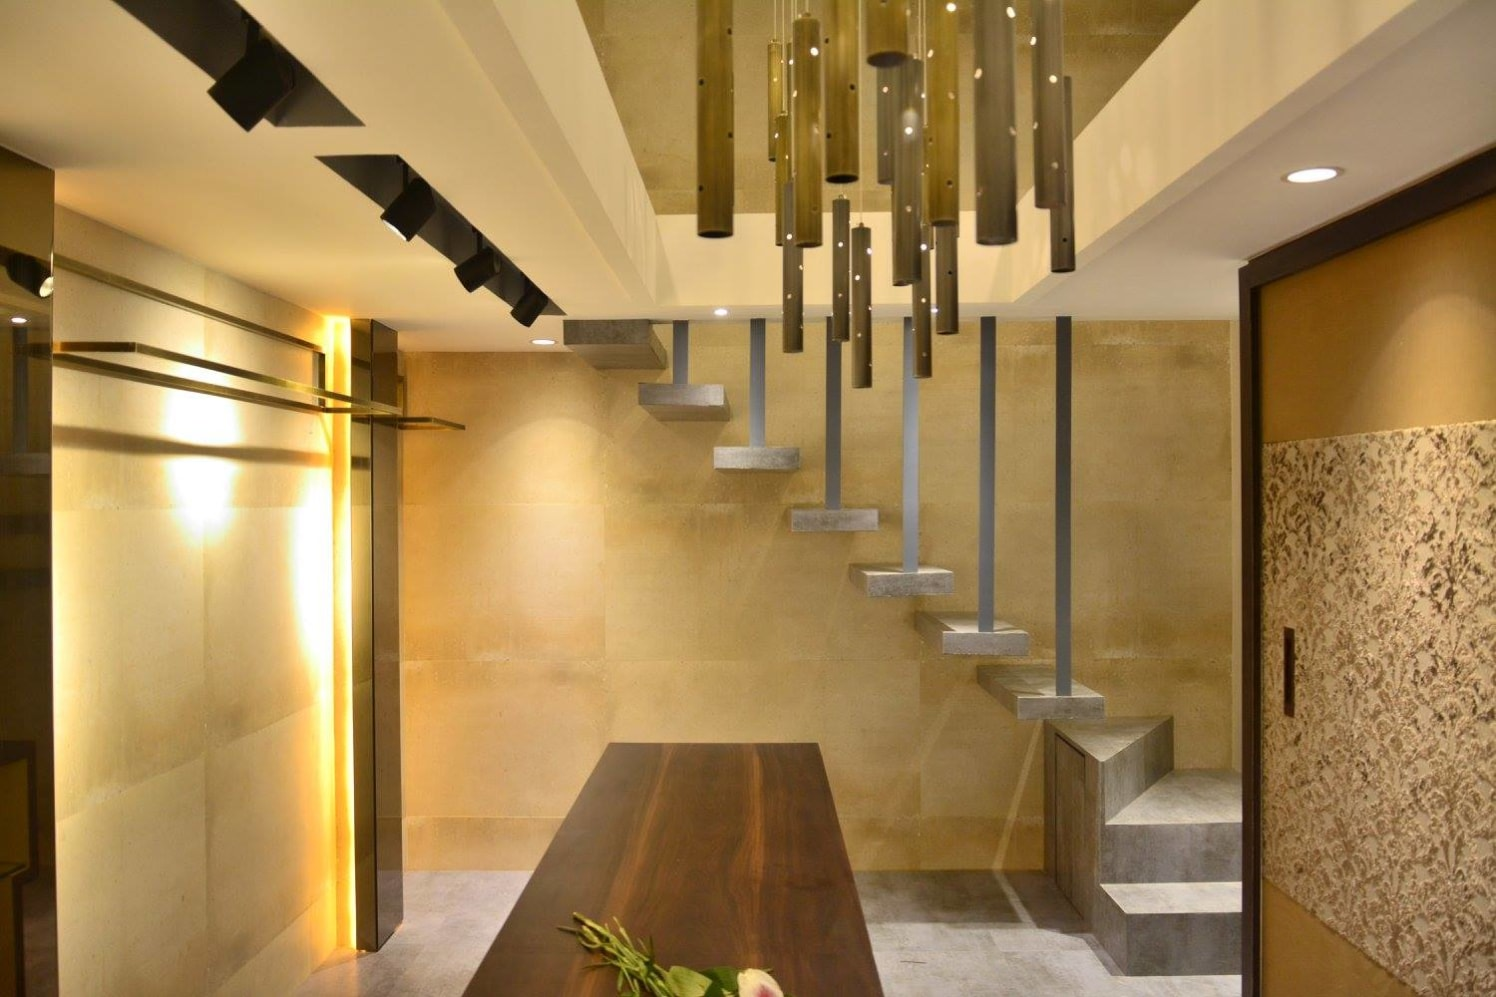 Modern Hallway With Staircase by Limited Edition Design Studio Indoor-spaces Modern | Interior Design Photos & Ideas